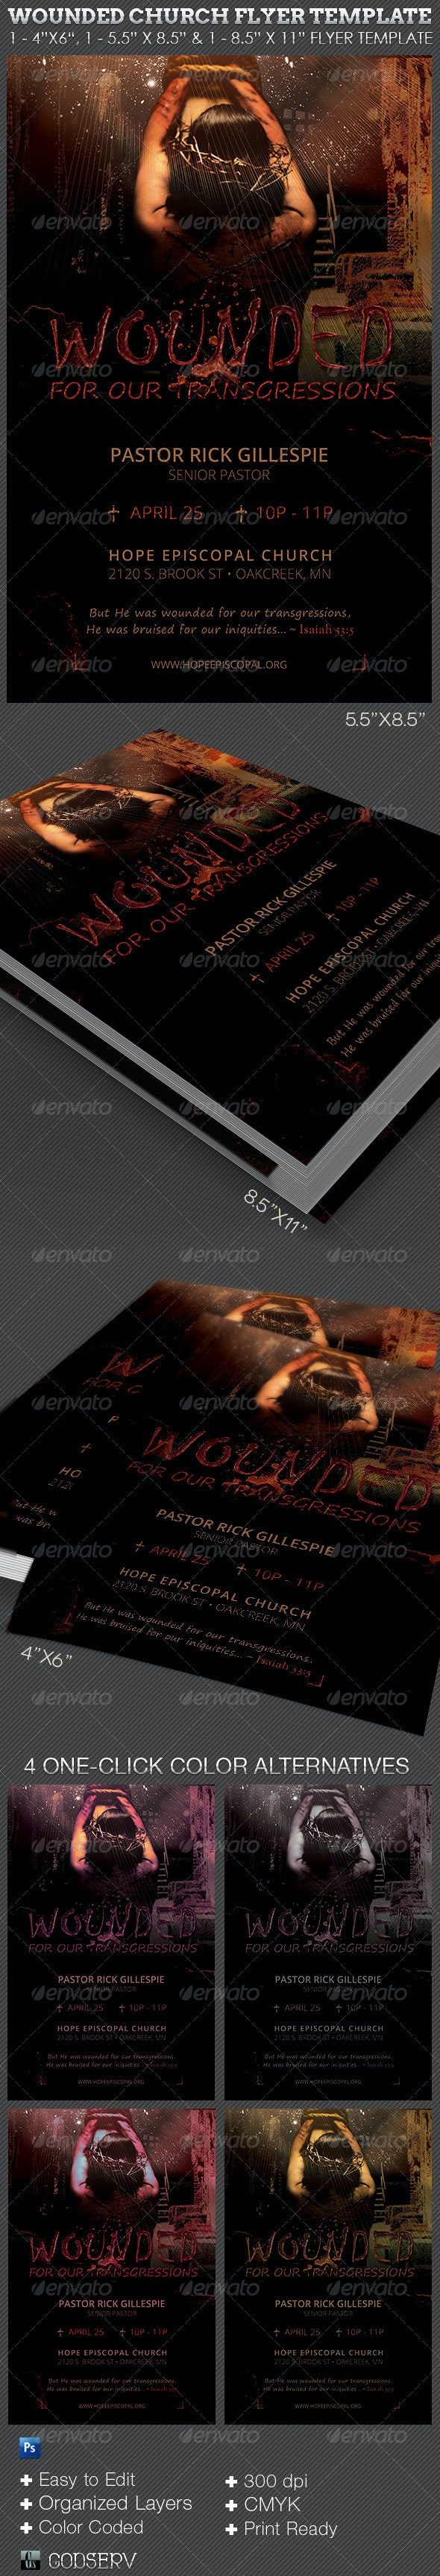 Wounded Church Flyer Template - Church Flyers